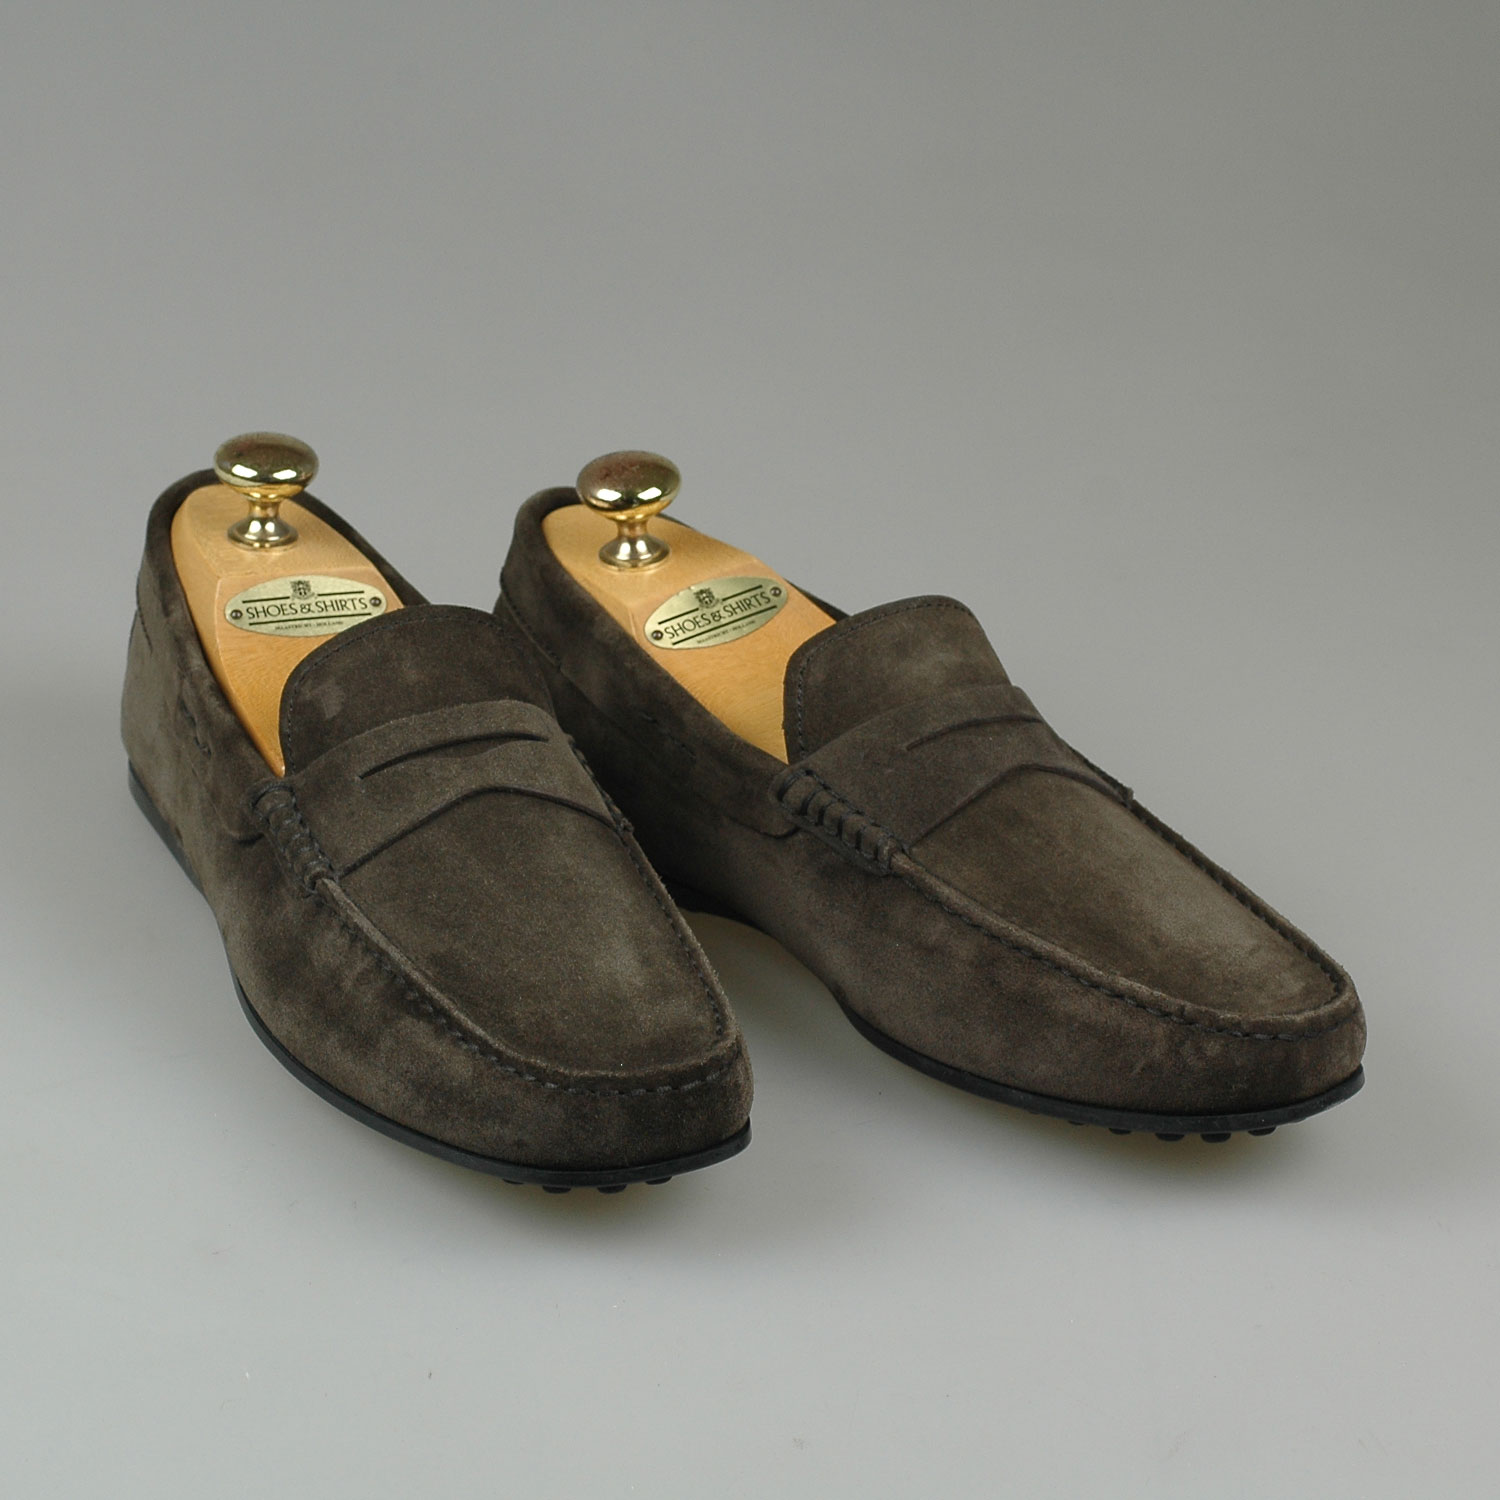 10c3f4fc5a Tod's Gommino driving suede